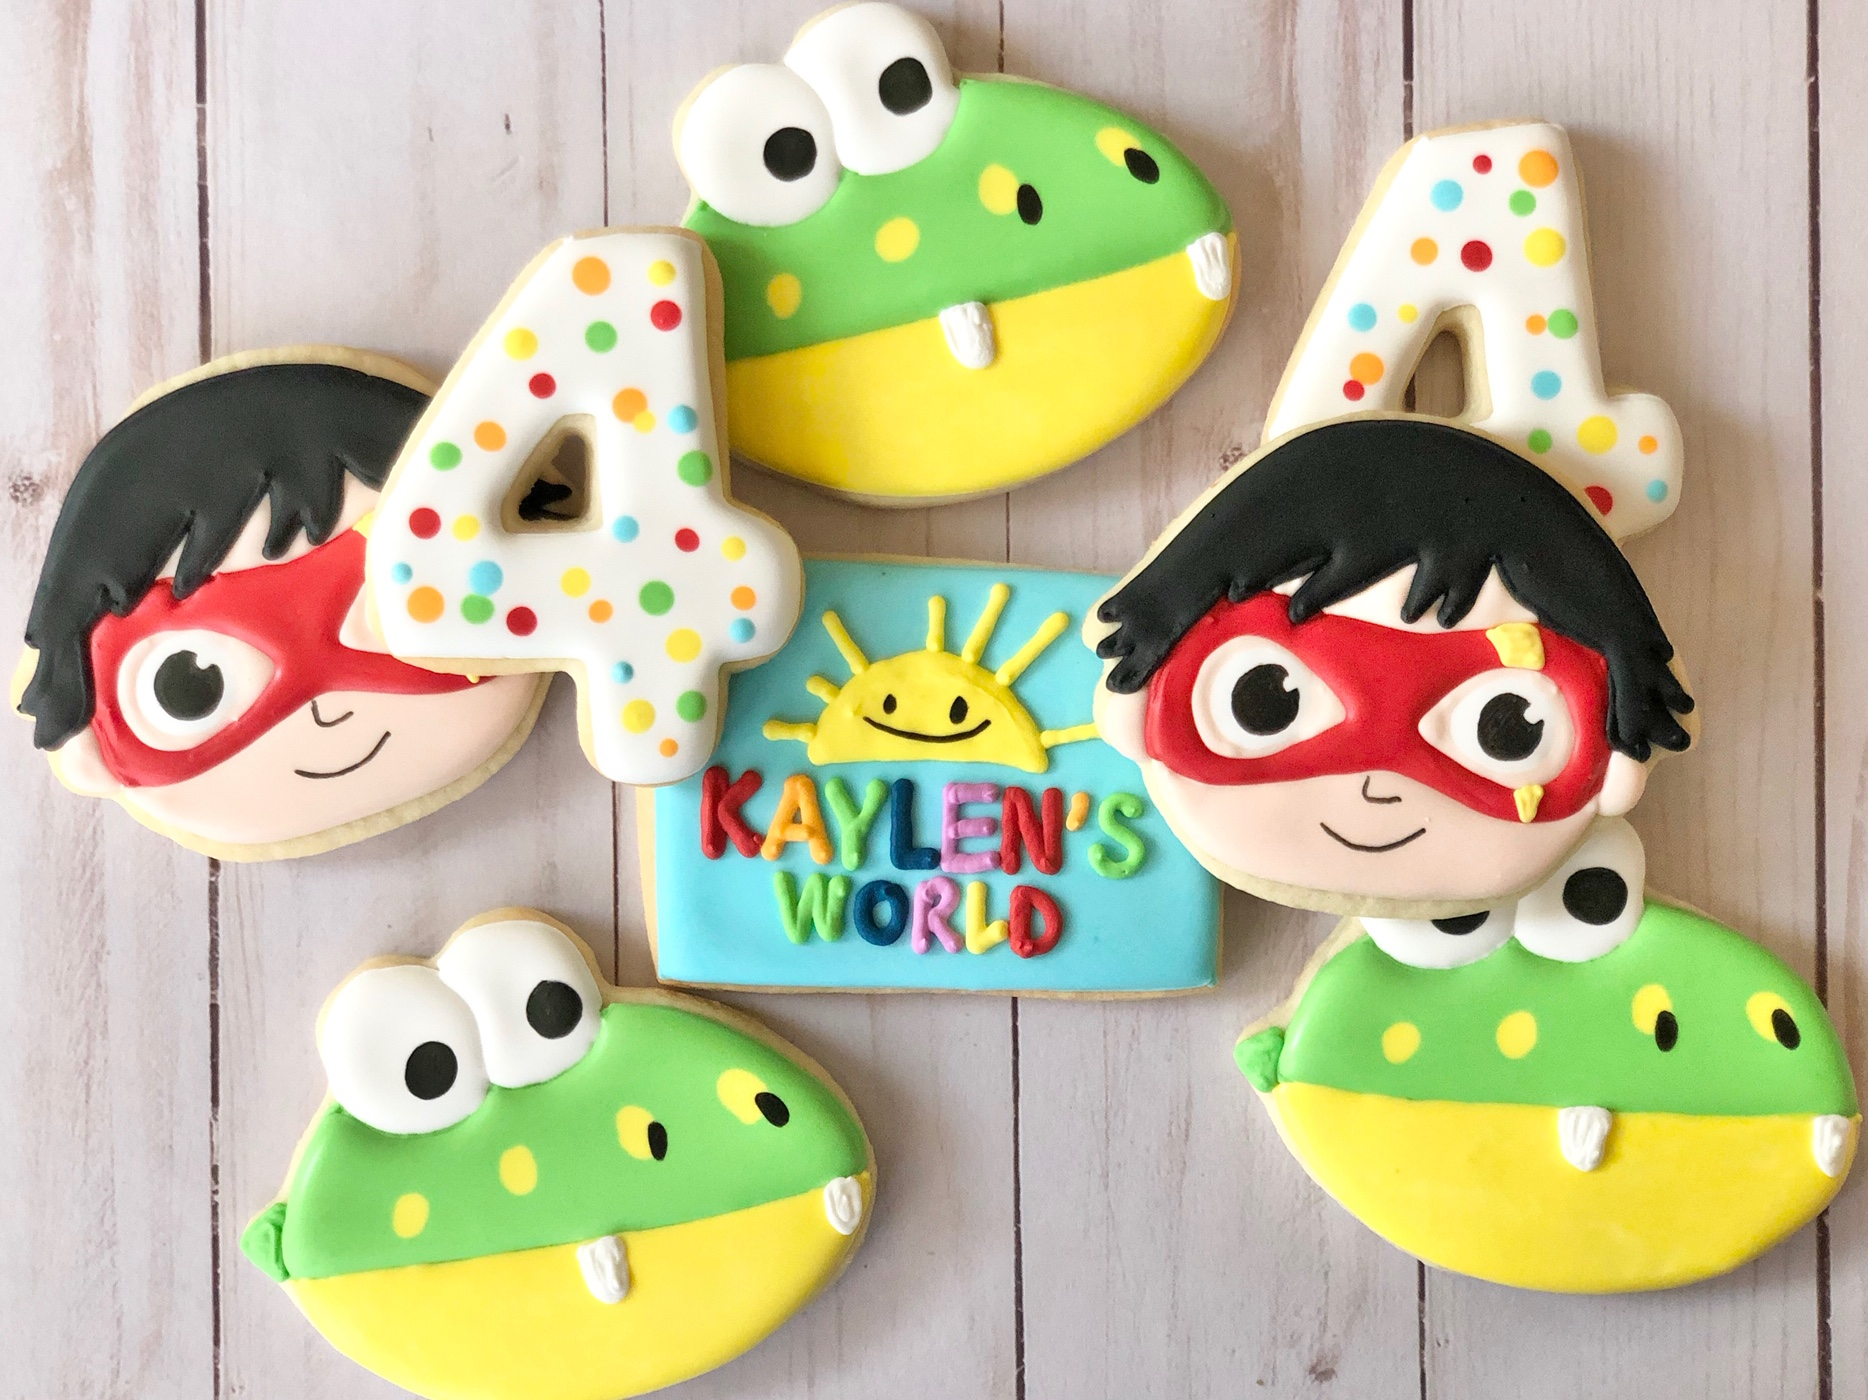 Ryan's World Custom Cookies